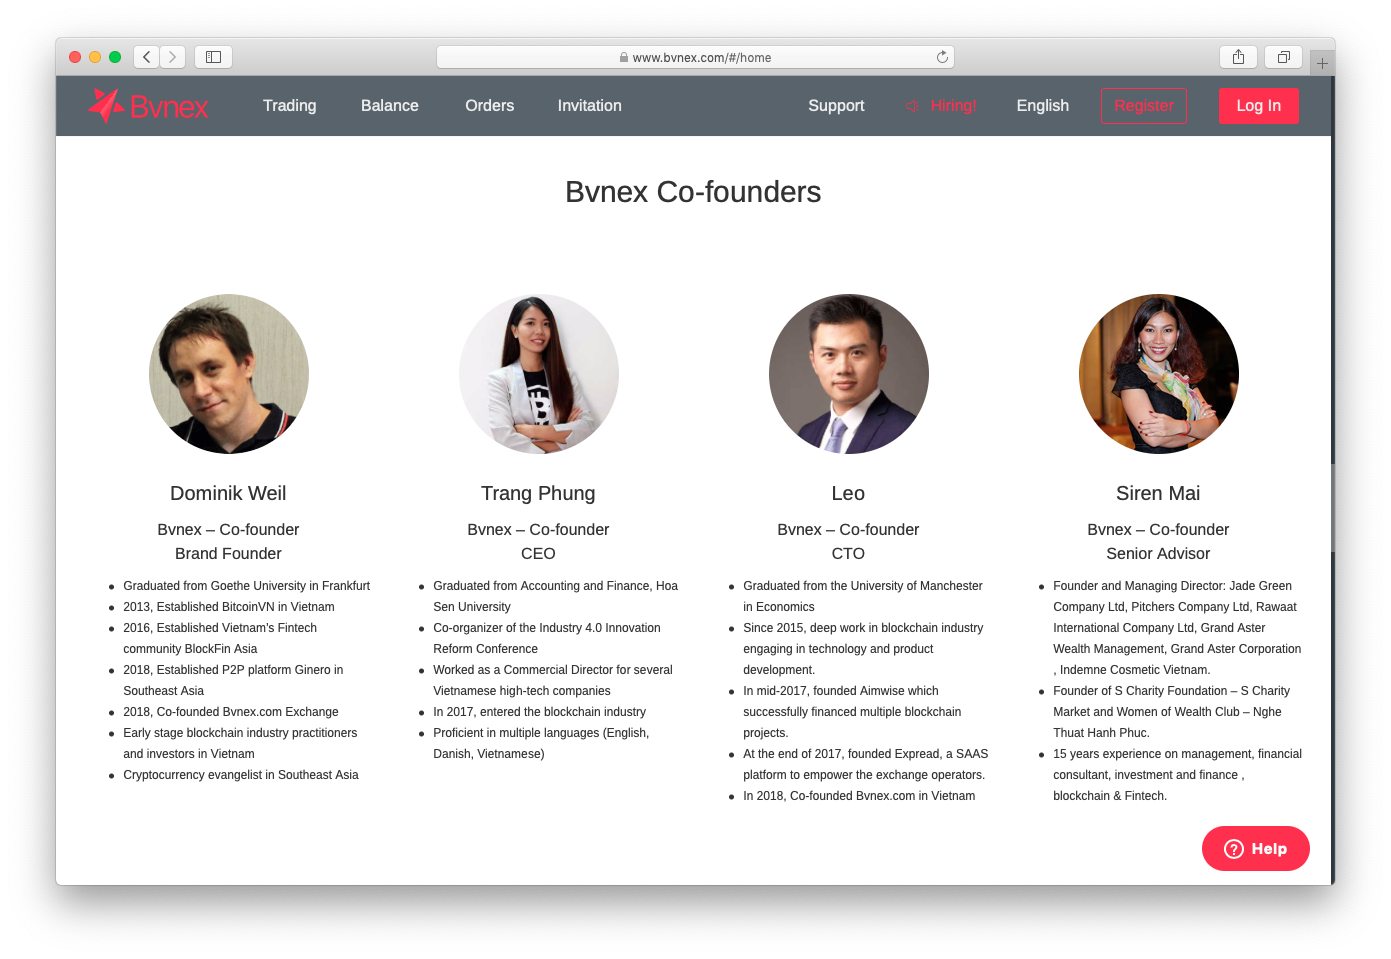 Dominik listed as one of the co-founders. Why wouldn't Bvnex take sole credit for what is solely their creation?